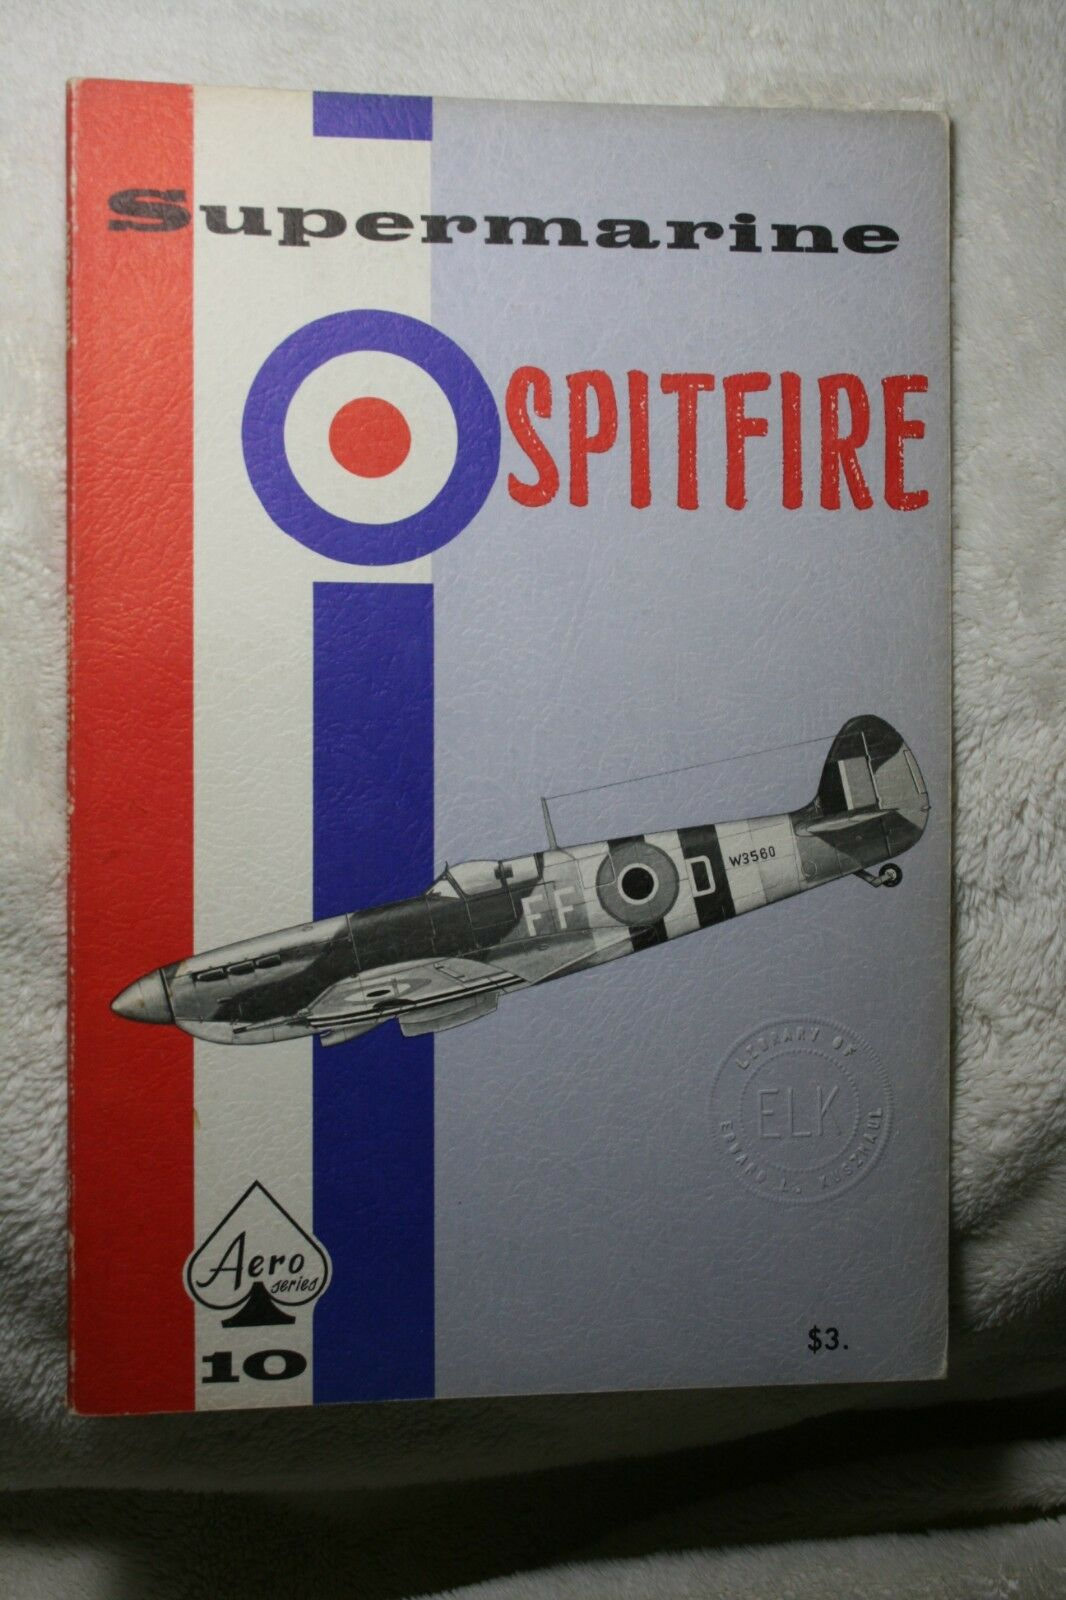 Supermarine Spitfire Aero Series Publishing book # 10 Good Condition |